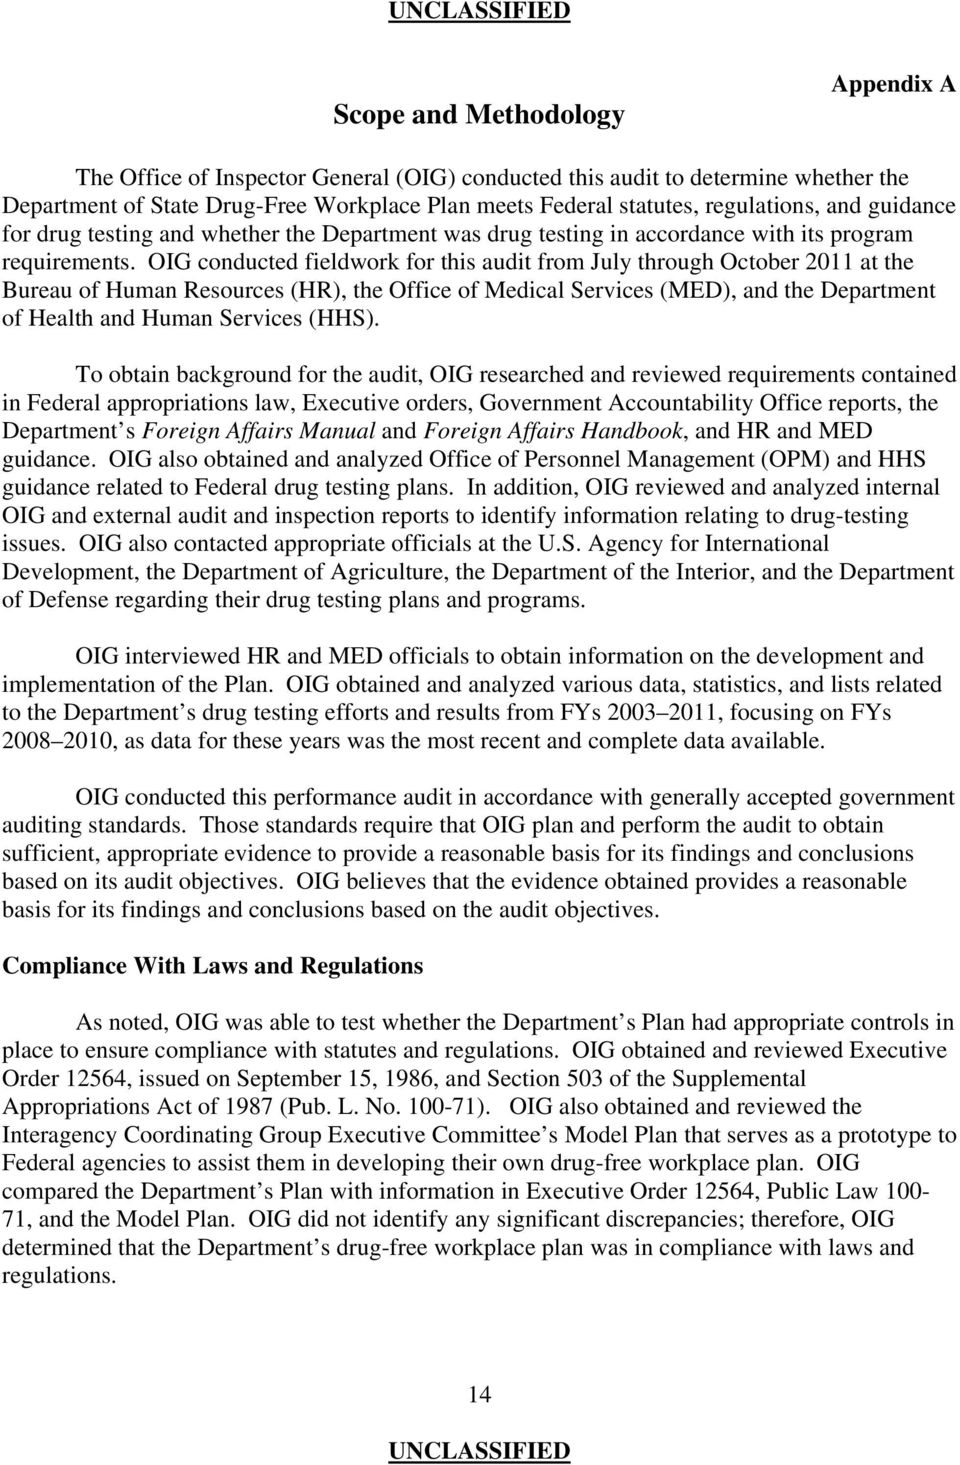 OIG conducted fieldwork for this audit from July through October 2011 at the Bureau of Human Resources (HR), the Office of Medical Services (MED), and the Department of Health and Human Services